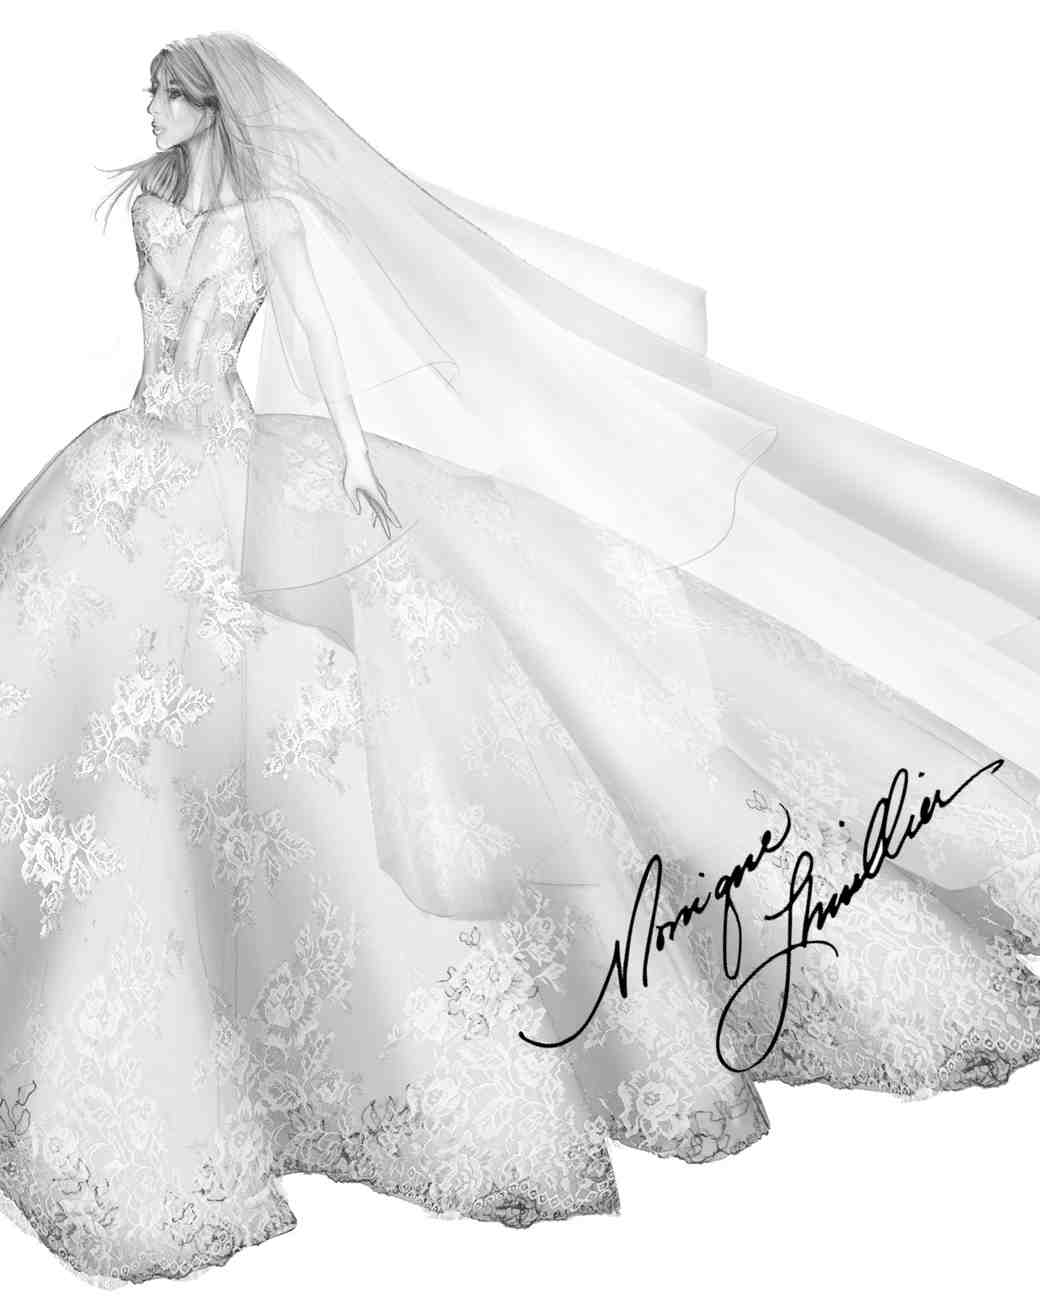 monique lhuillier wedding dress sketch